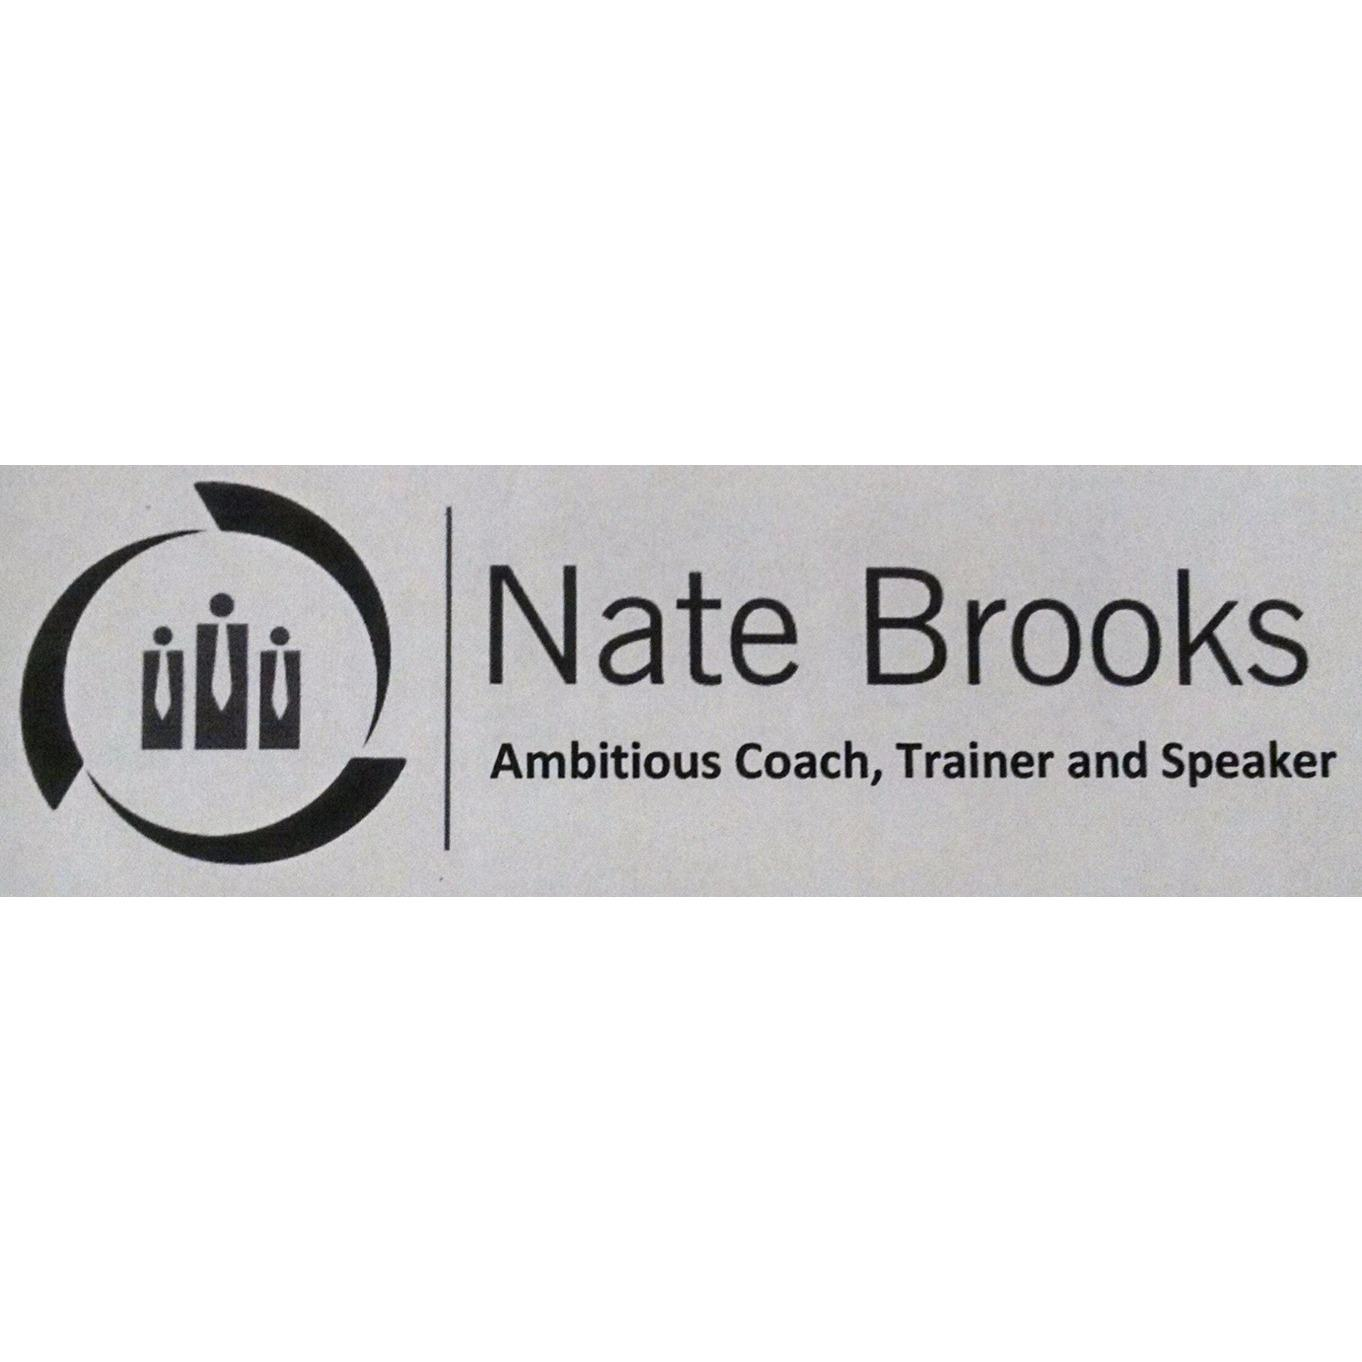 Dr. Nate Brooks